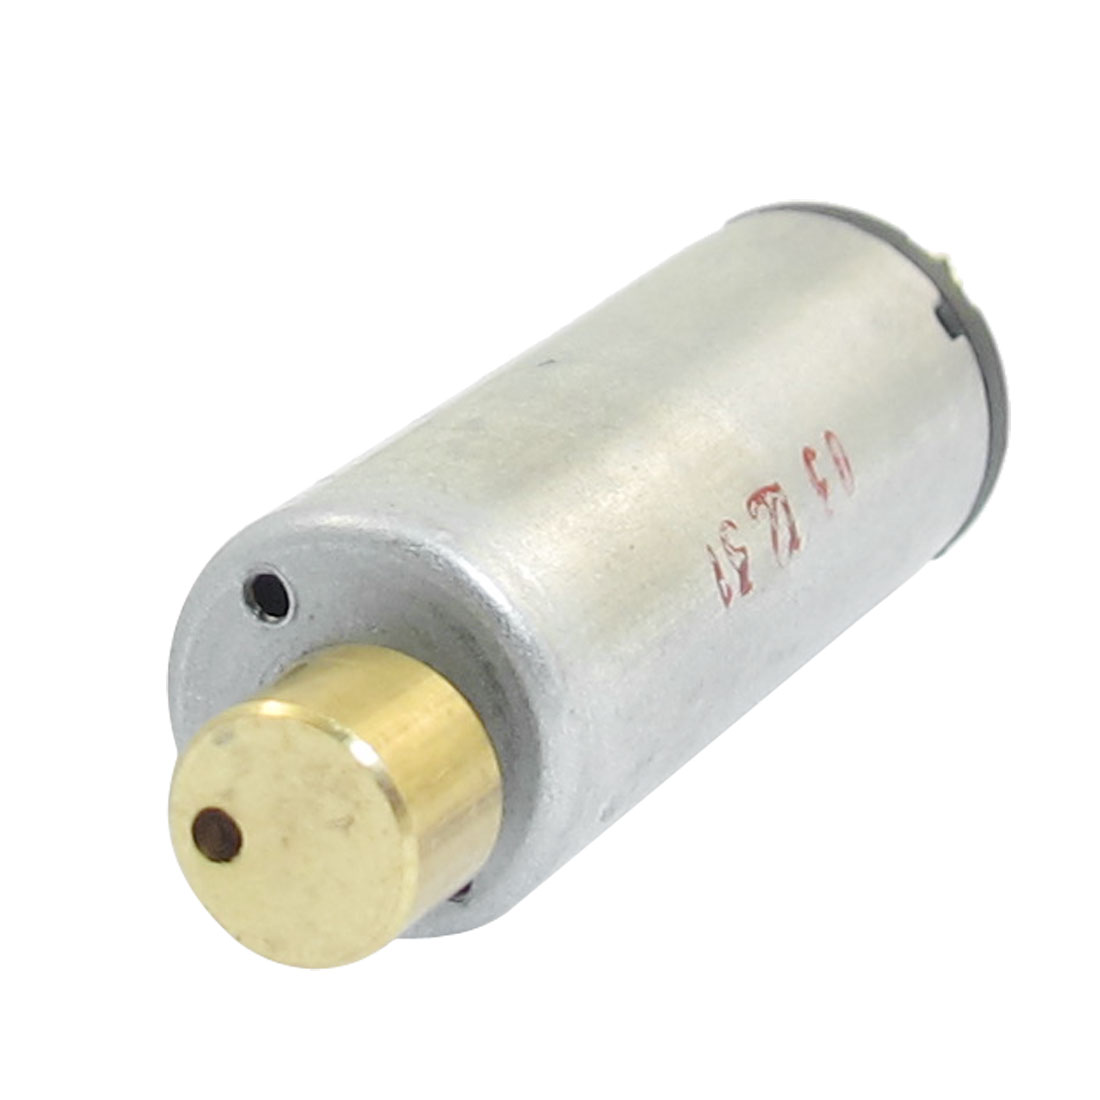 Spare-Part-1-5-6VDC-1750-7000RPM-Vibrating-Vibration-Micro-Motor